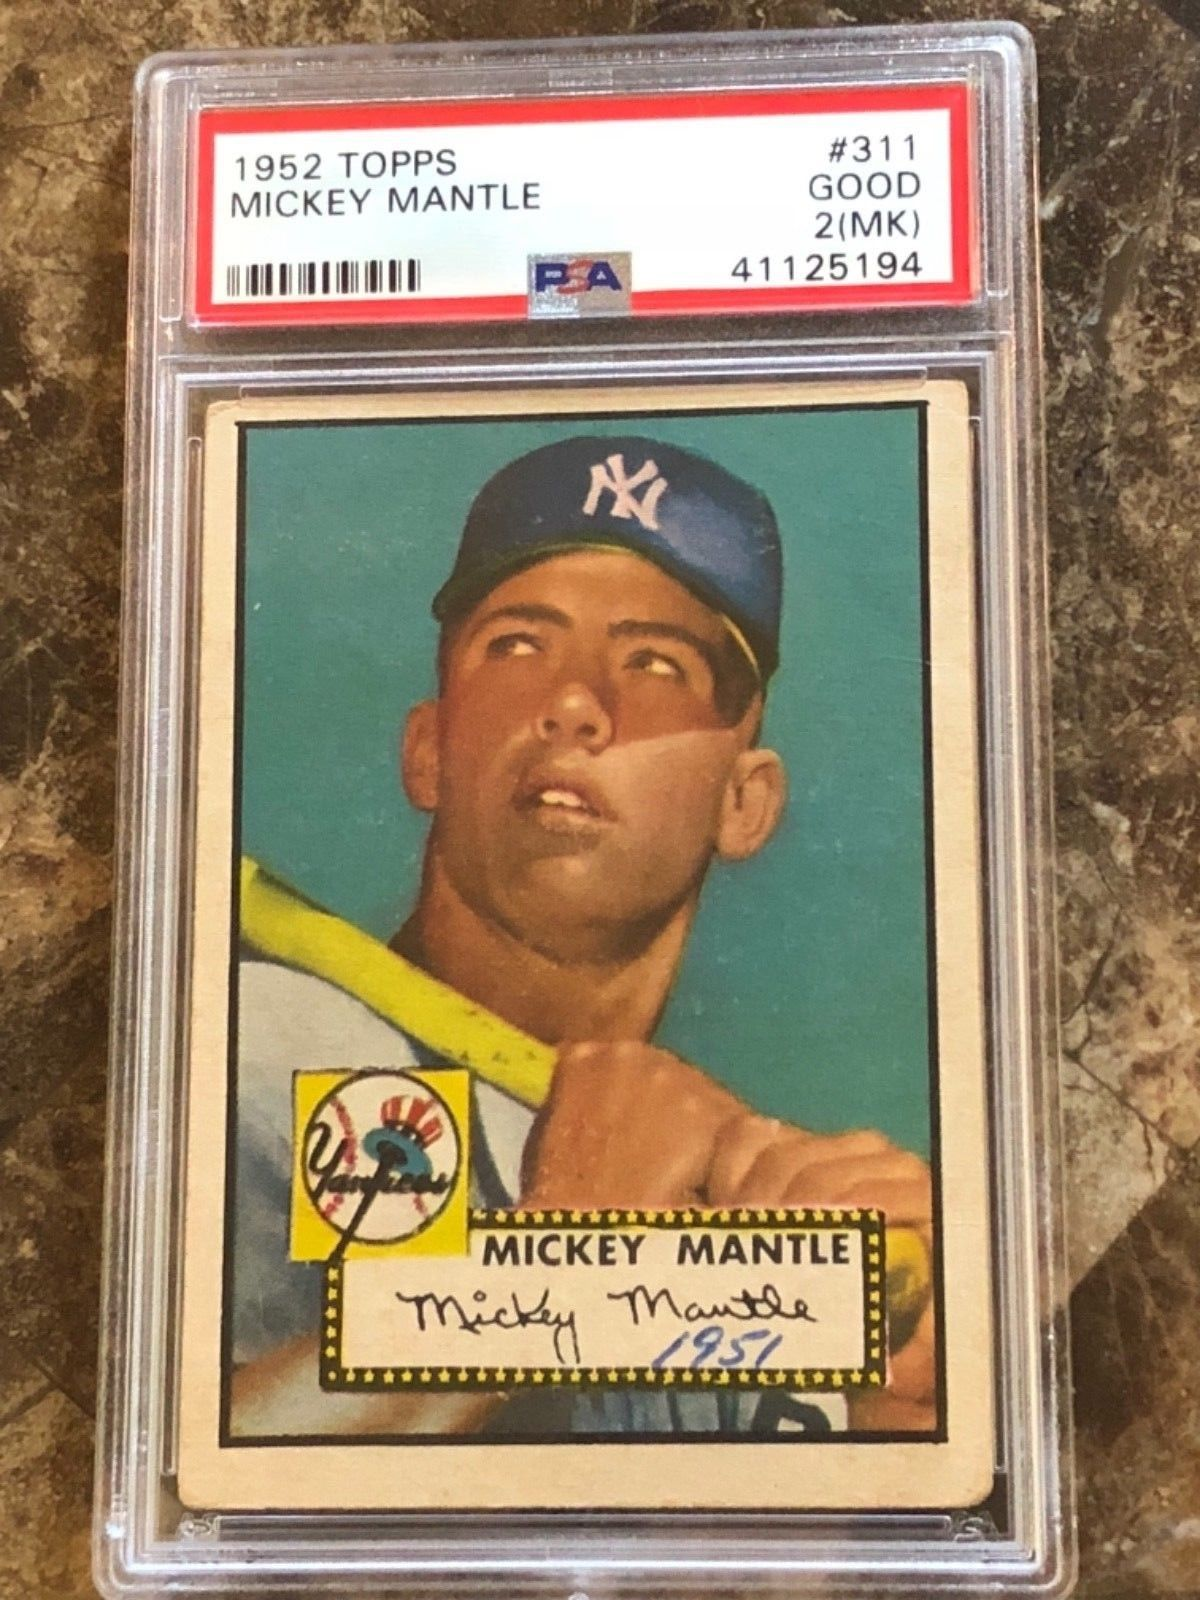 1952 Topps 311 Mickey Mantle Psa 2 Mk Nice Centering Eye Appeal 1952topps Mantle Old Baseball Cards Mickey Mantle Rare Baseball Cards